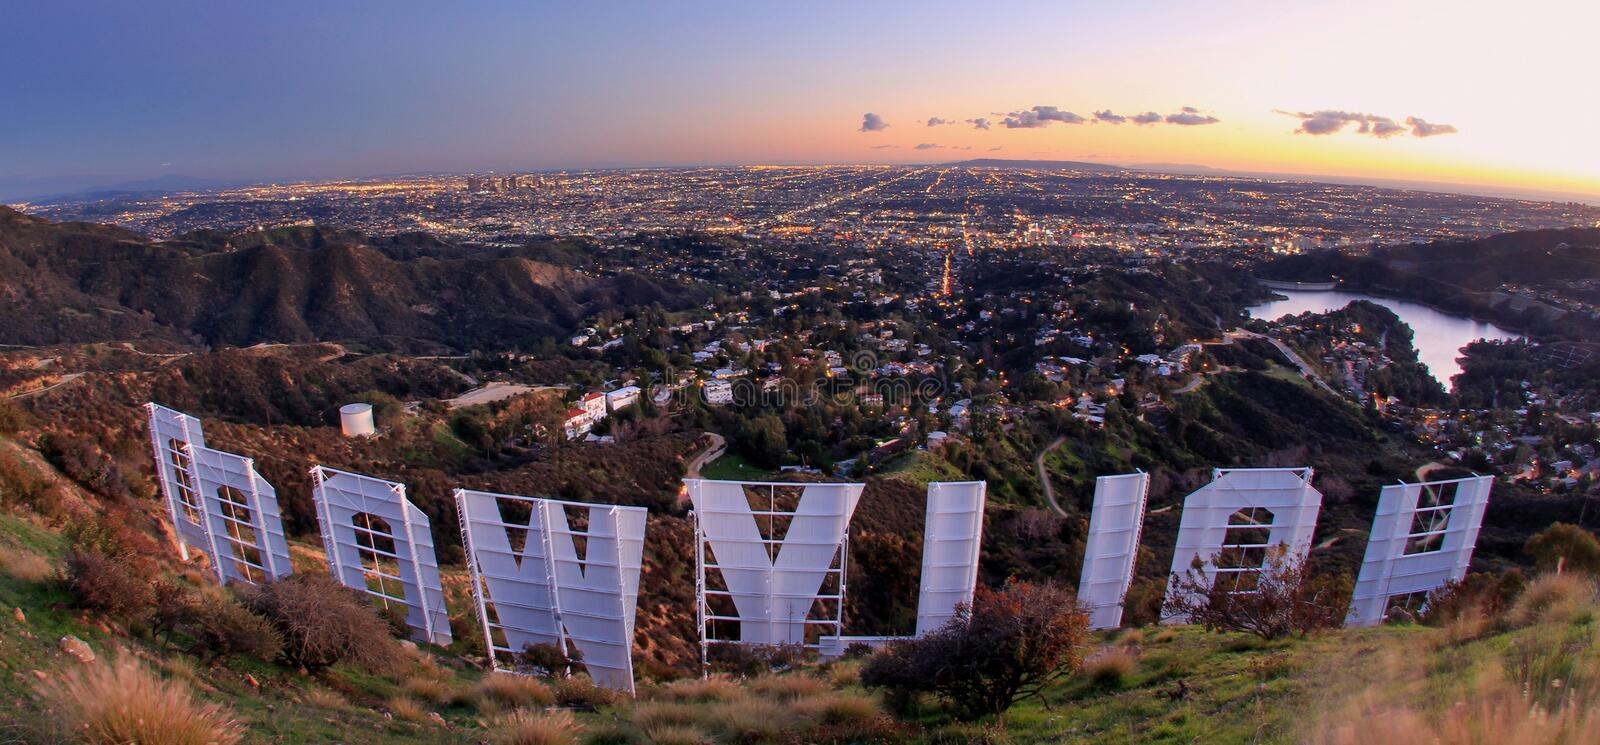 Hollywood Hills lizenzfreie stockbilder